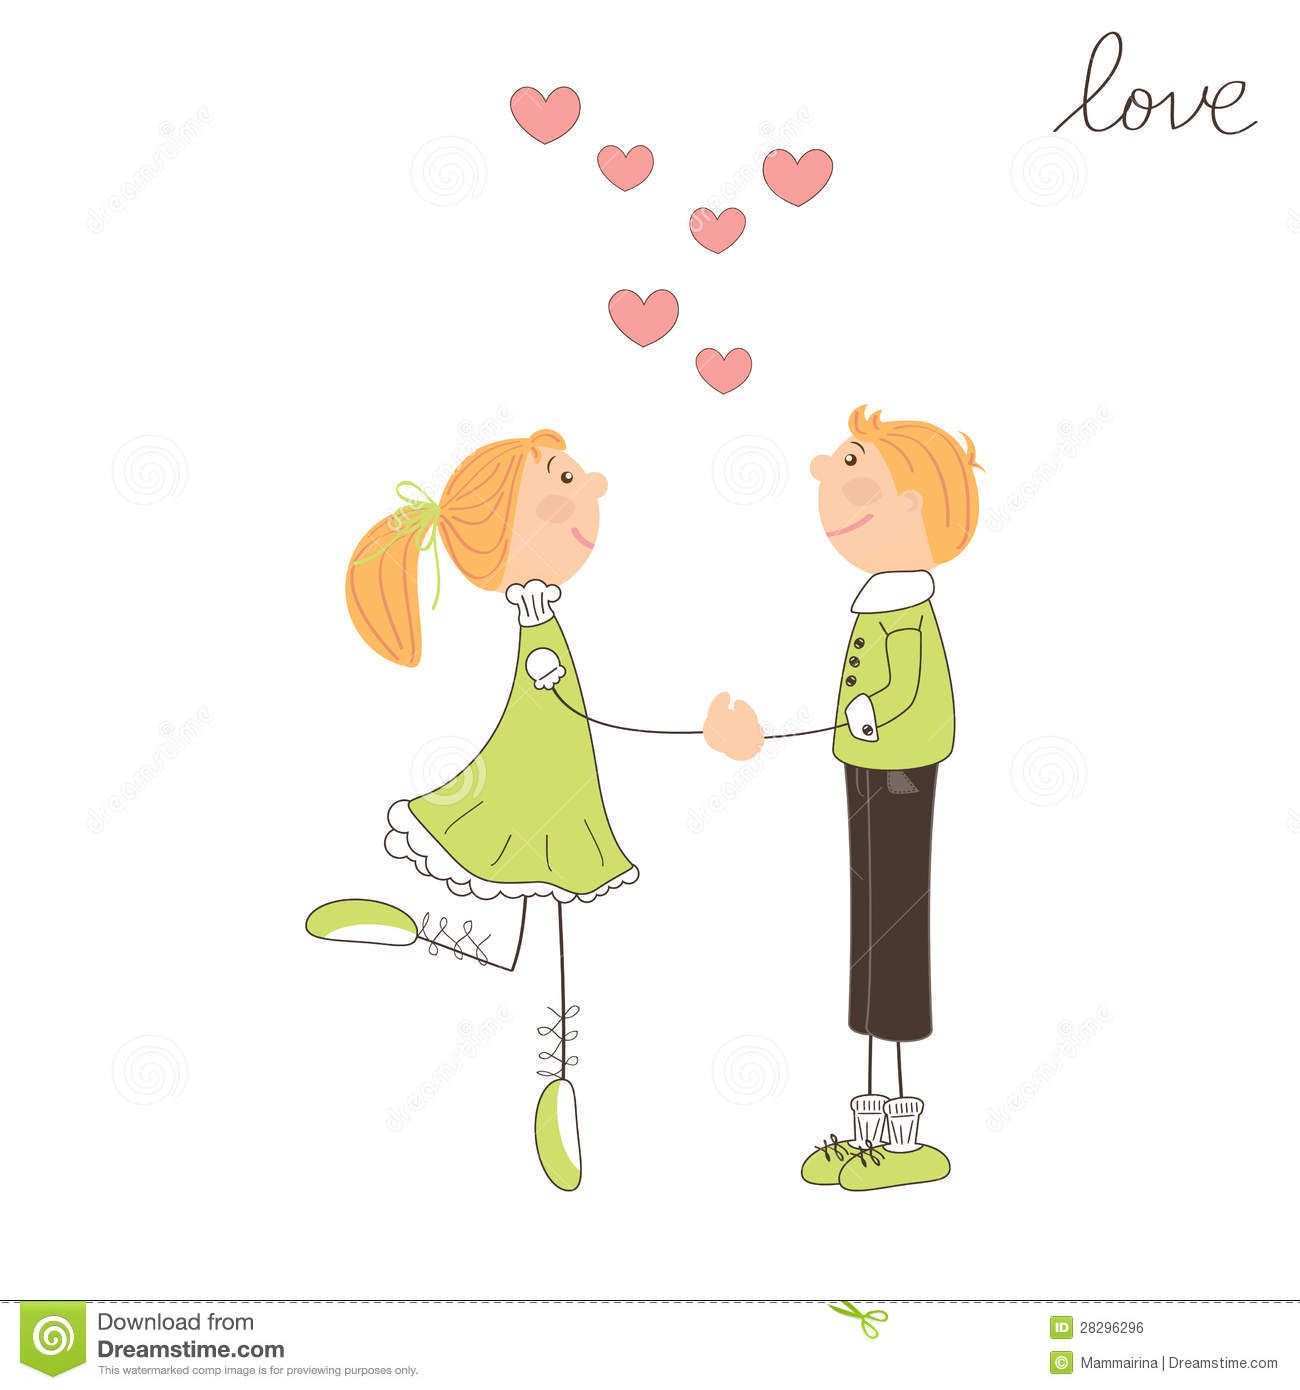 Free clipart for falling in love.